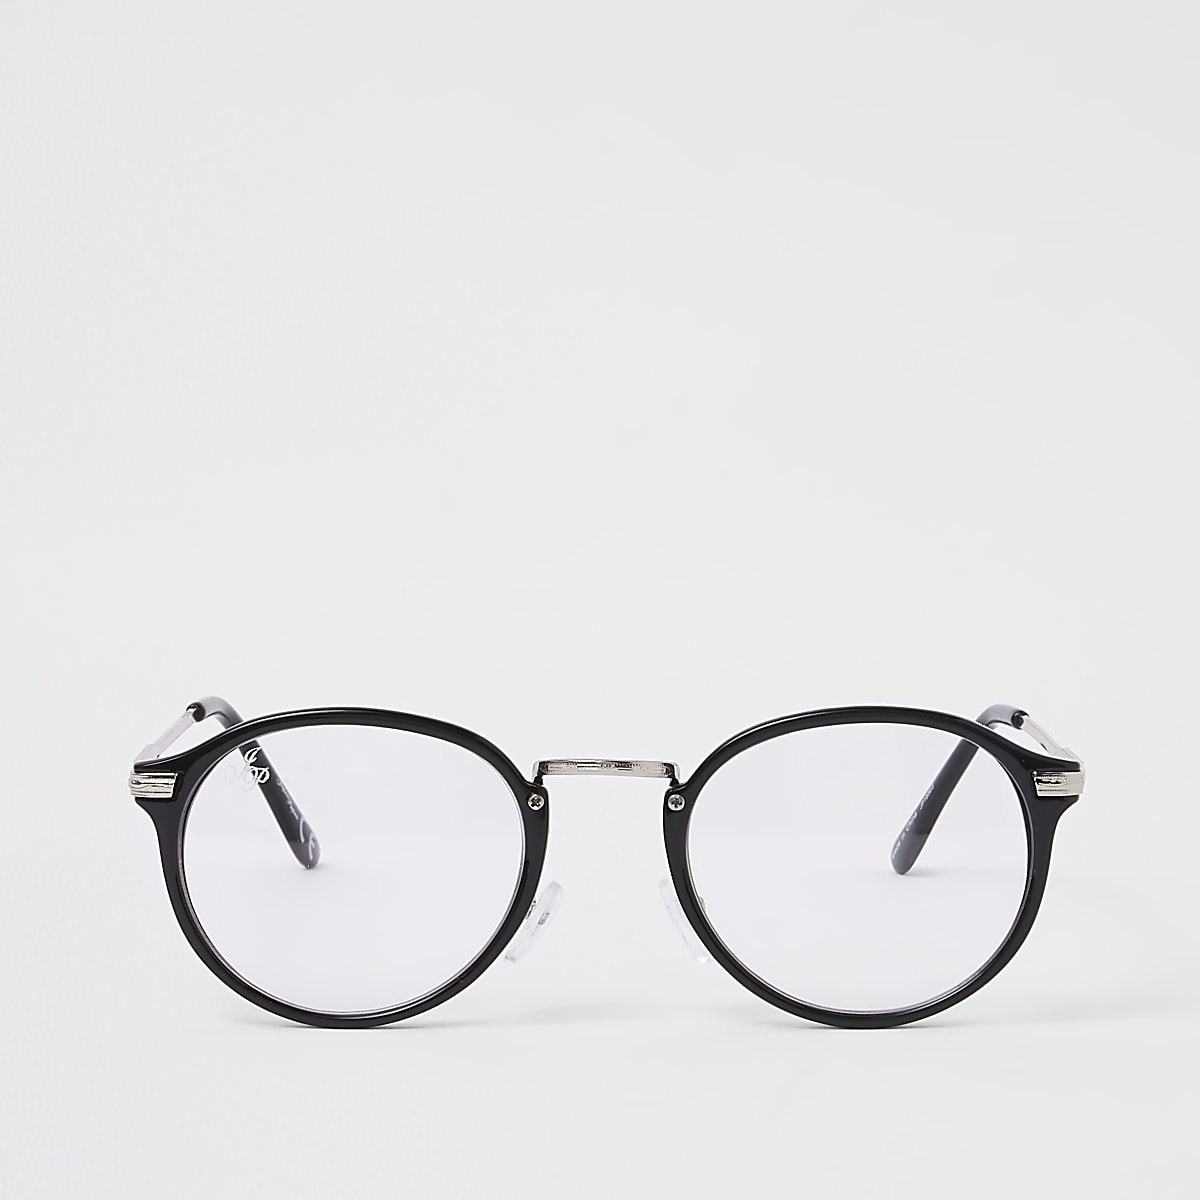 Jeepers Peepers black clear lens glasses